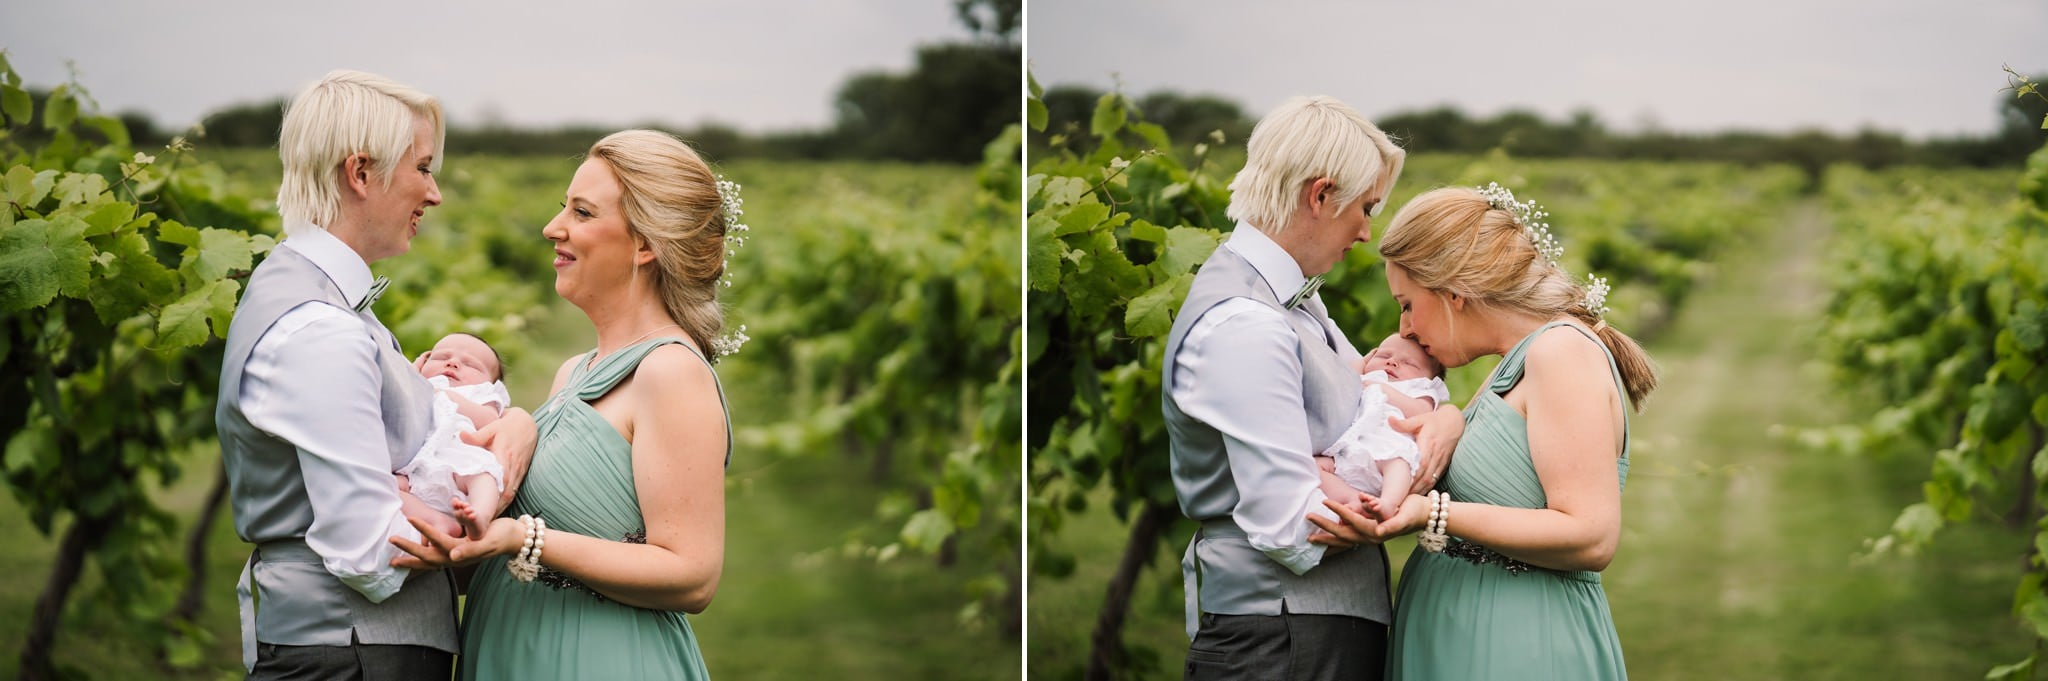 Same sex parents at Three Choirs Vineyard wedding